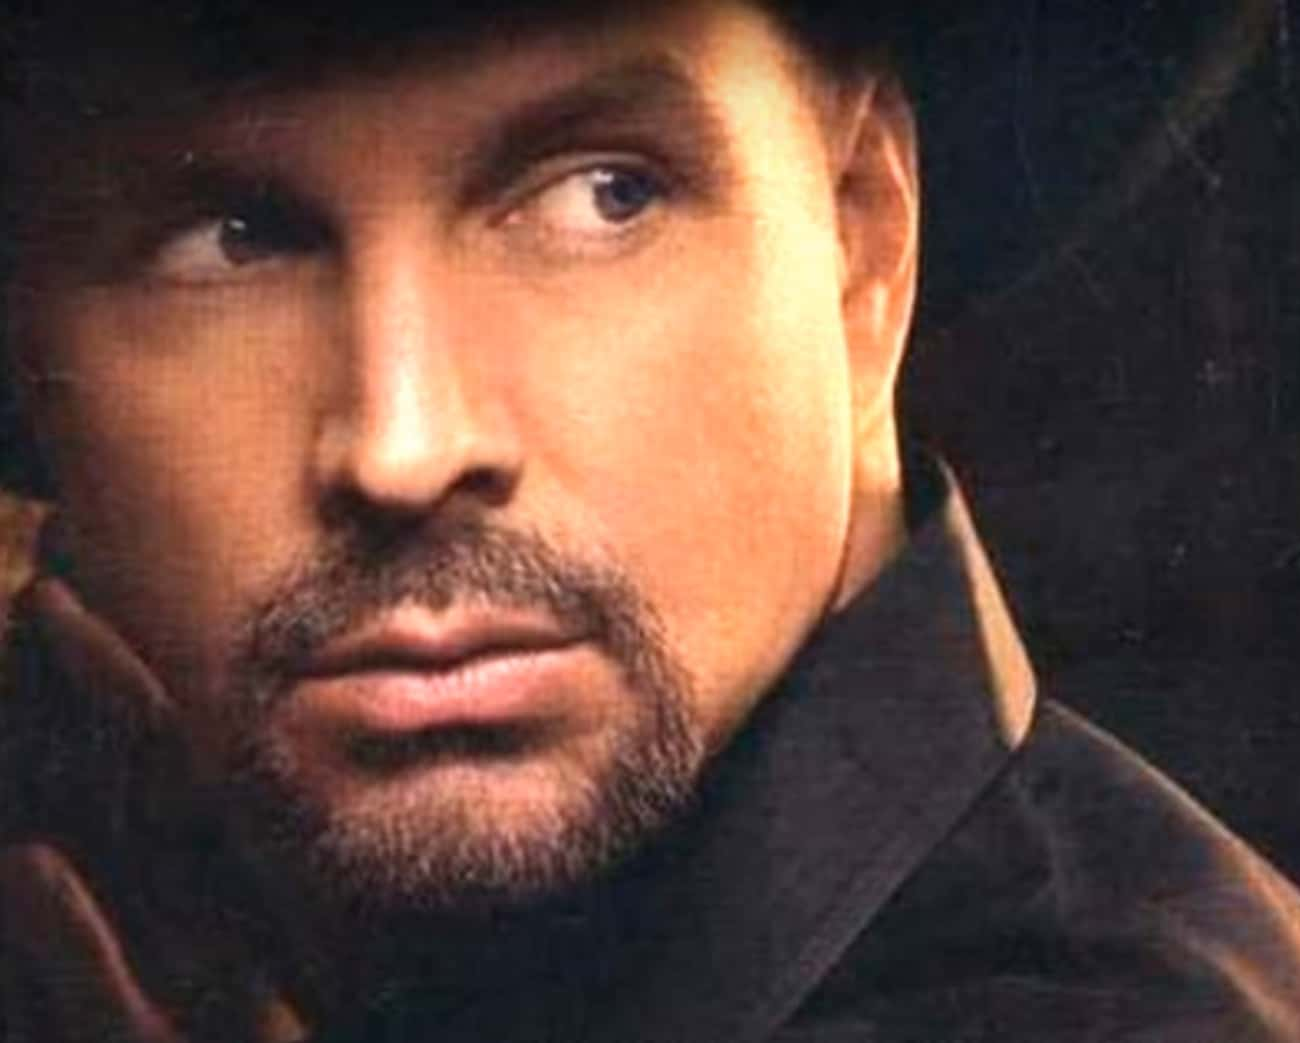 Garth Is The Michael Jordan Of is listed (or ranked) 2 on the list 21 Weird AF Facts About Garth Brooks, The Biggest Country Star Of The '90s